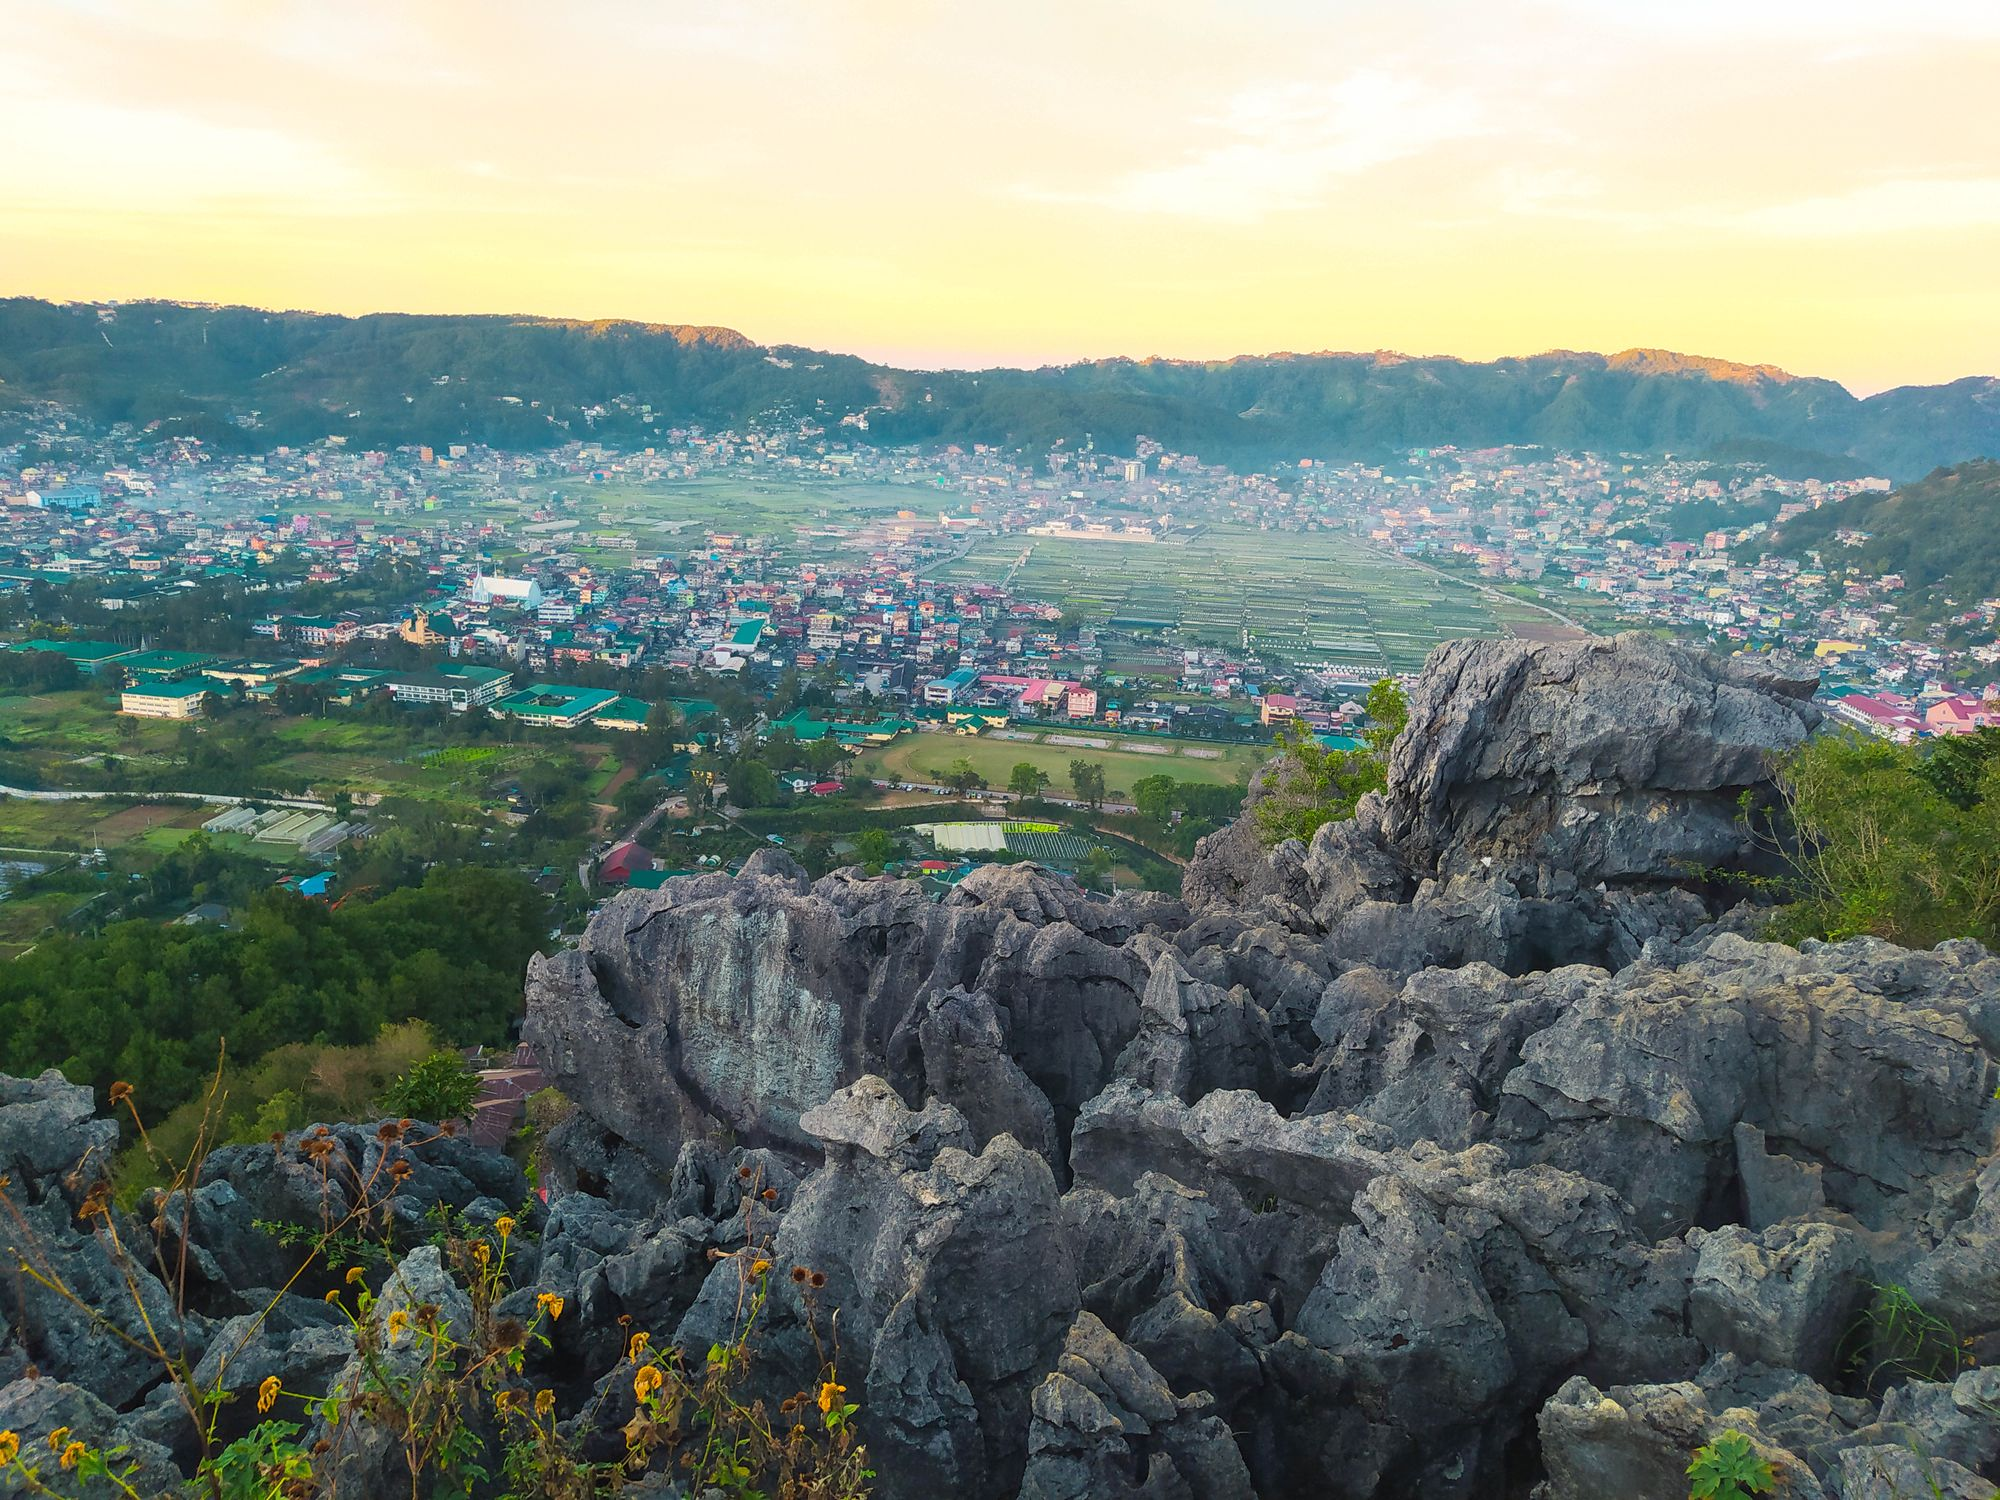 Limestone rocks overlooking a misty valley town surrounded by hills and mountains beneath an early morning sky